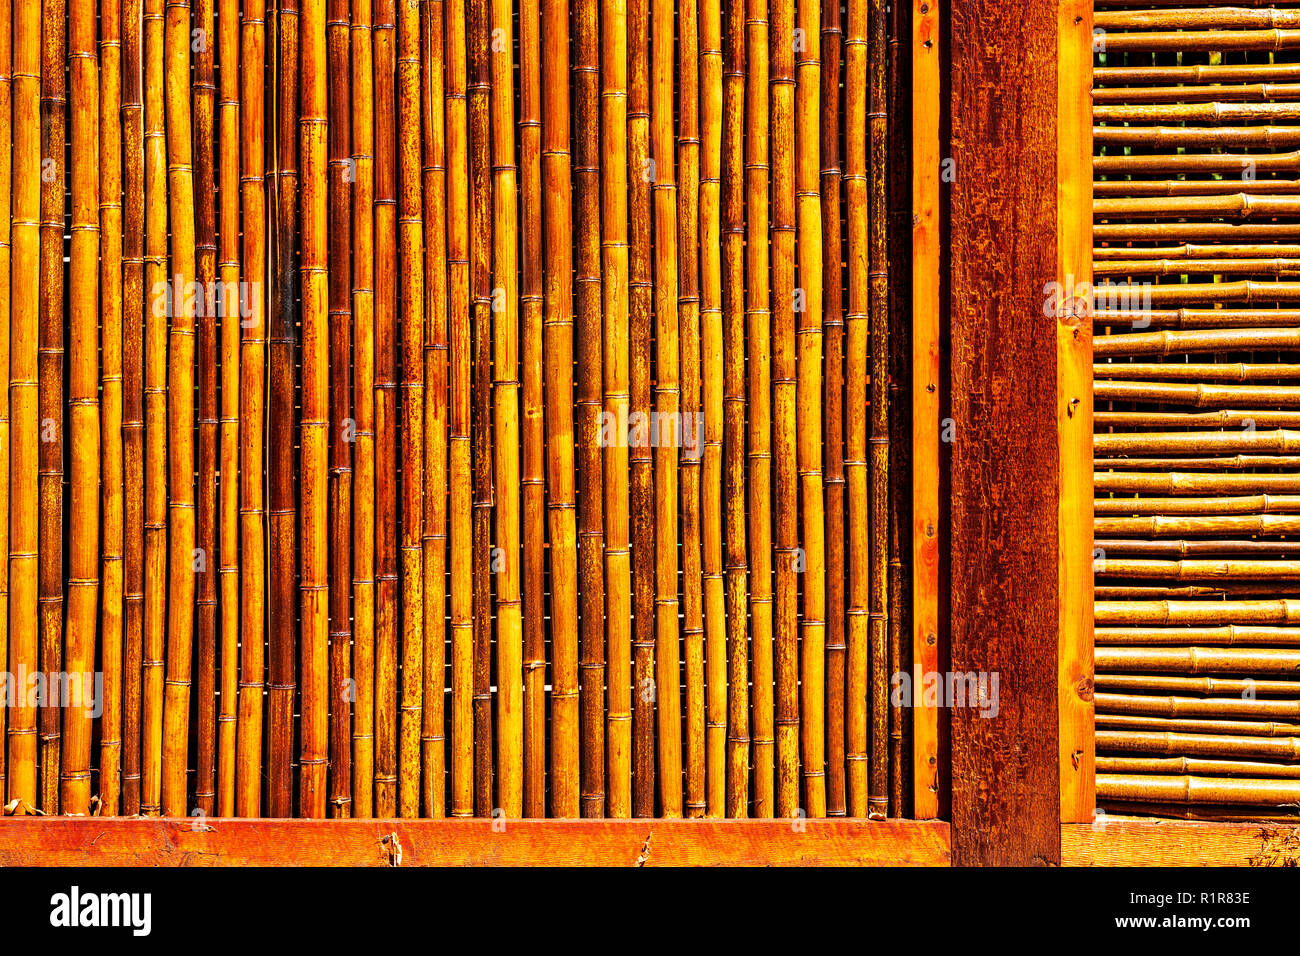 Bamboo fence creates graphic patterns Stock Photo